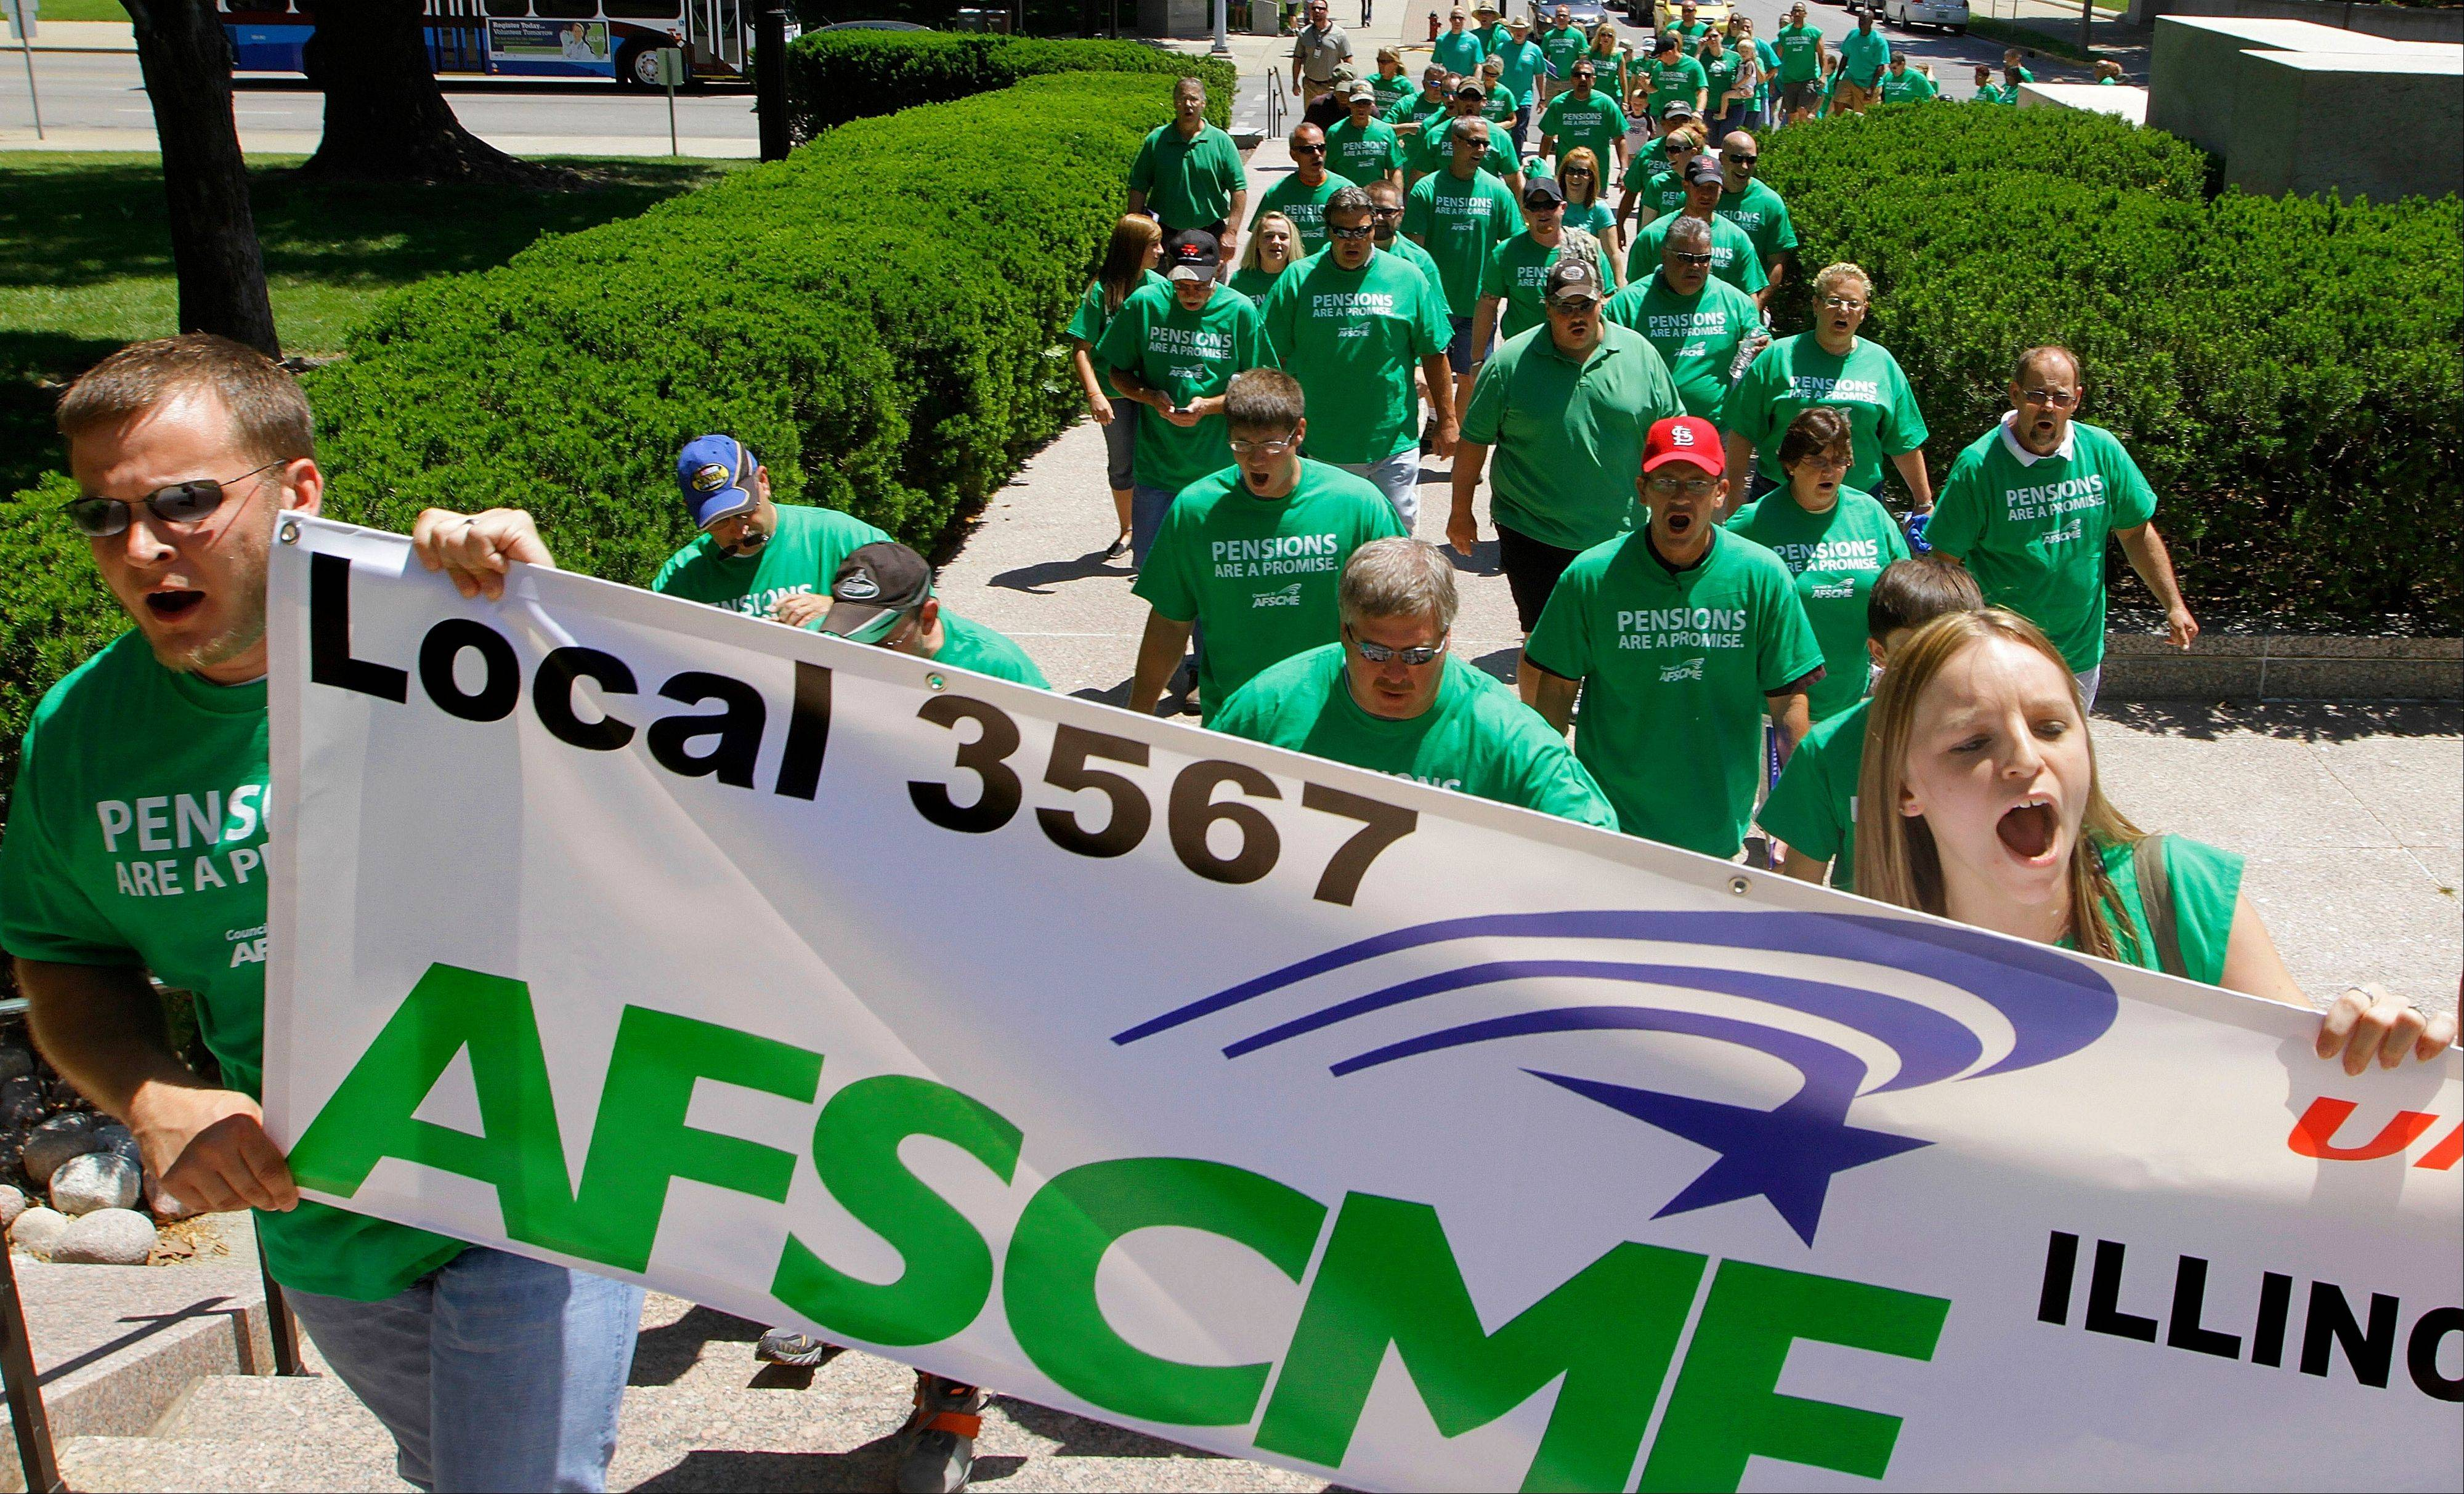 American Federation of State County and Municipal Employees union members, friends and family rally against the proposed pension legislation outside the at the Illinois State Capitol Wednesday, May 23, 2012 in Springfield, Ill. Lawmakers face big decisions on the twin problems of Medicaid and state pensions before going home to face voters in an election year and meet the General Assembly's June 1, 2012, deadline.